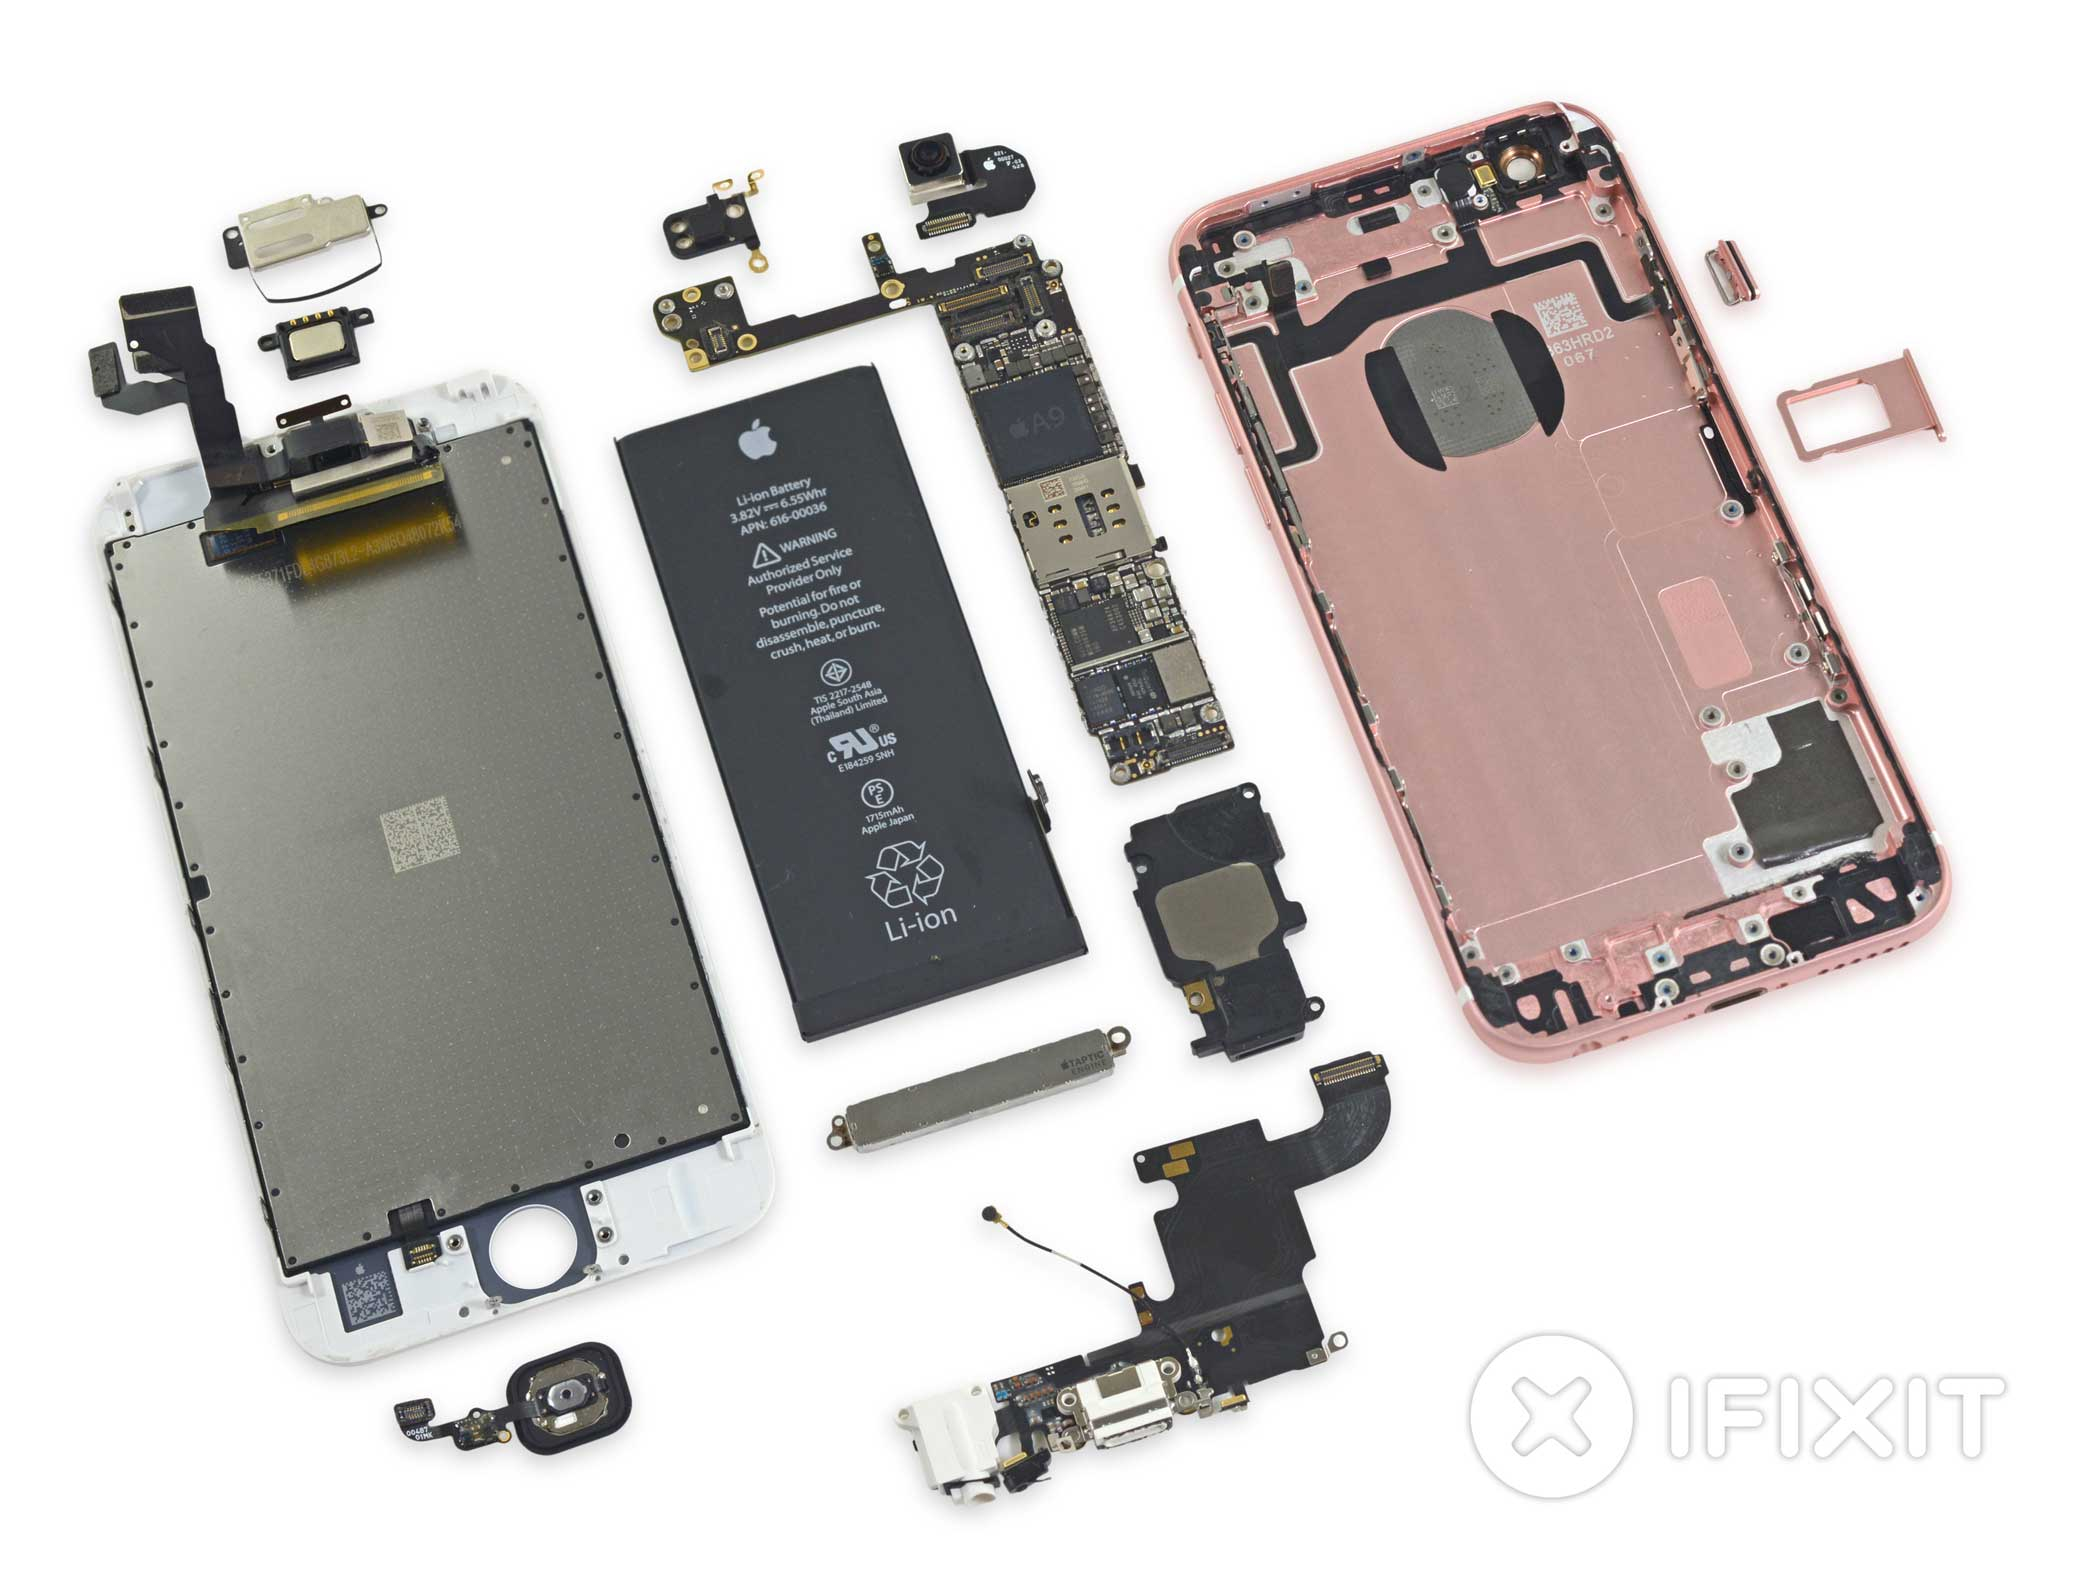 The iPhone 6s entirely dismantled.